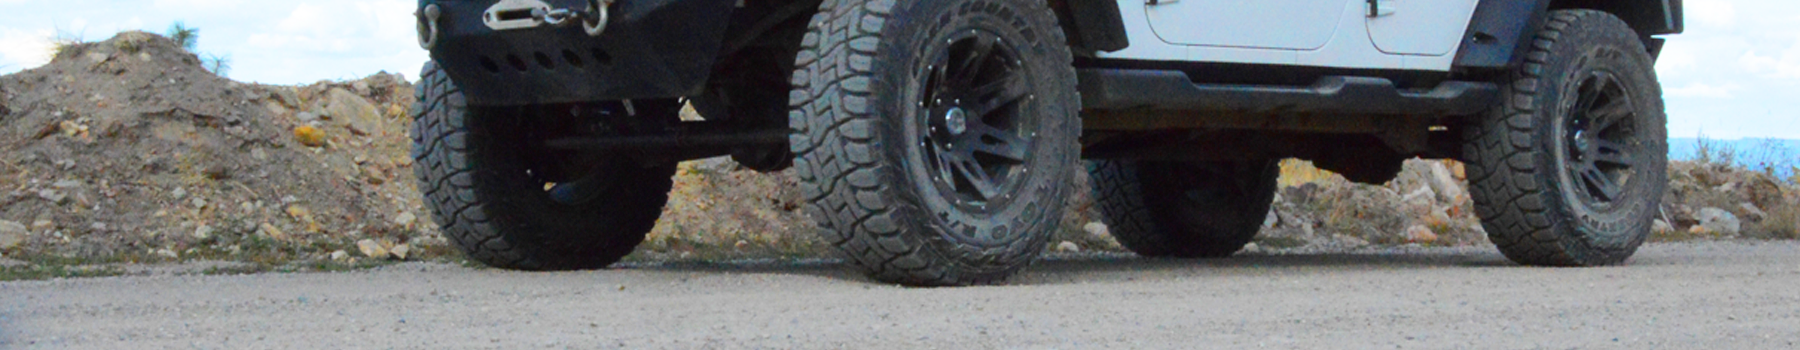 Rugged_on_off_road_tire-banner